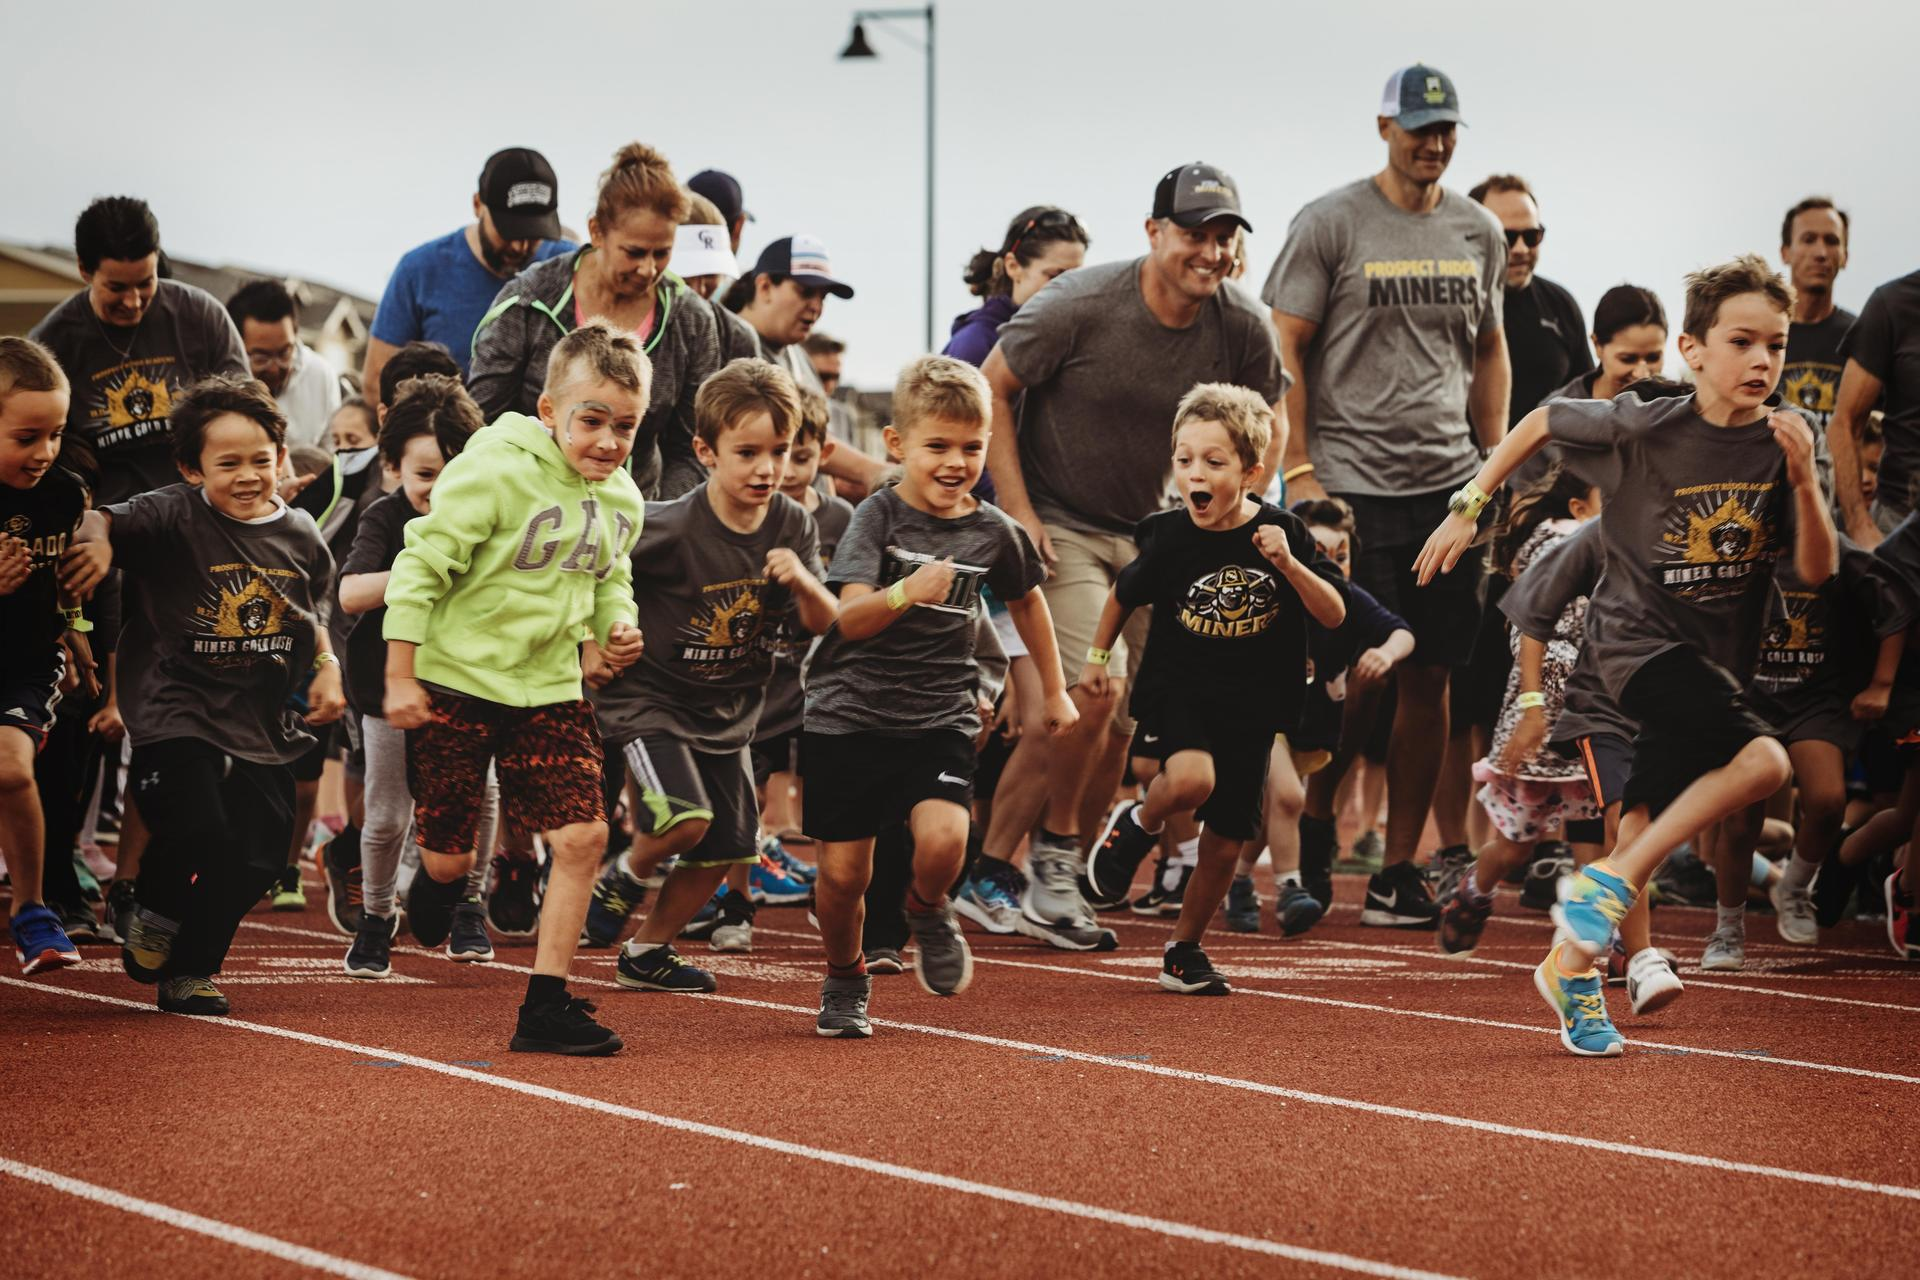 Child runners on a track